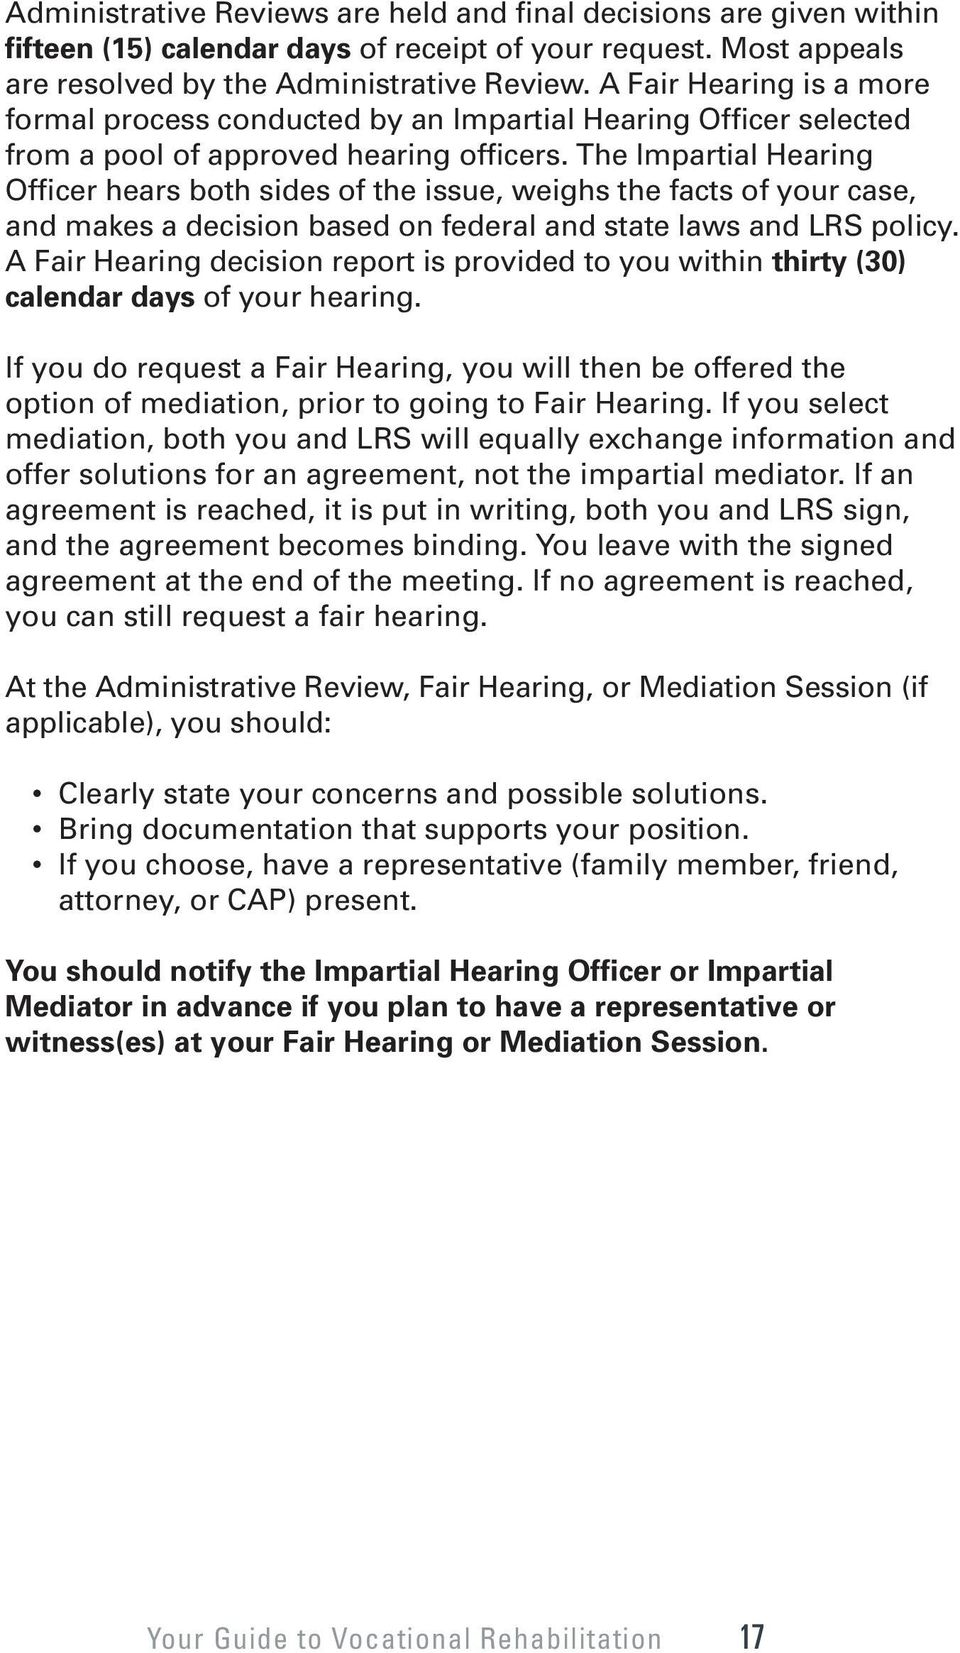 The Impartial Hearing Officer hears both sides of the issue, weighs the facts of your case, and makes a decision based on federal and state laws and LRS policy.